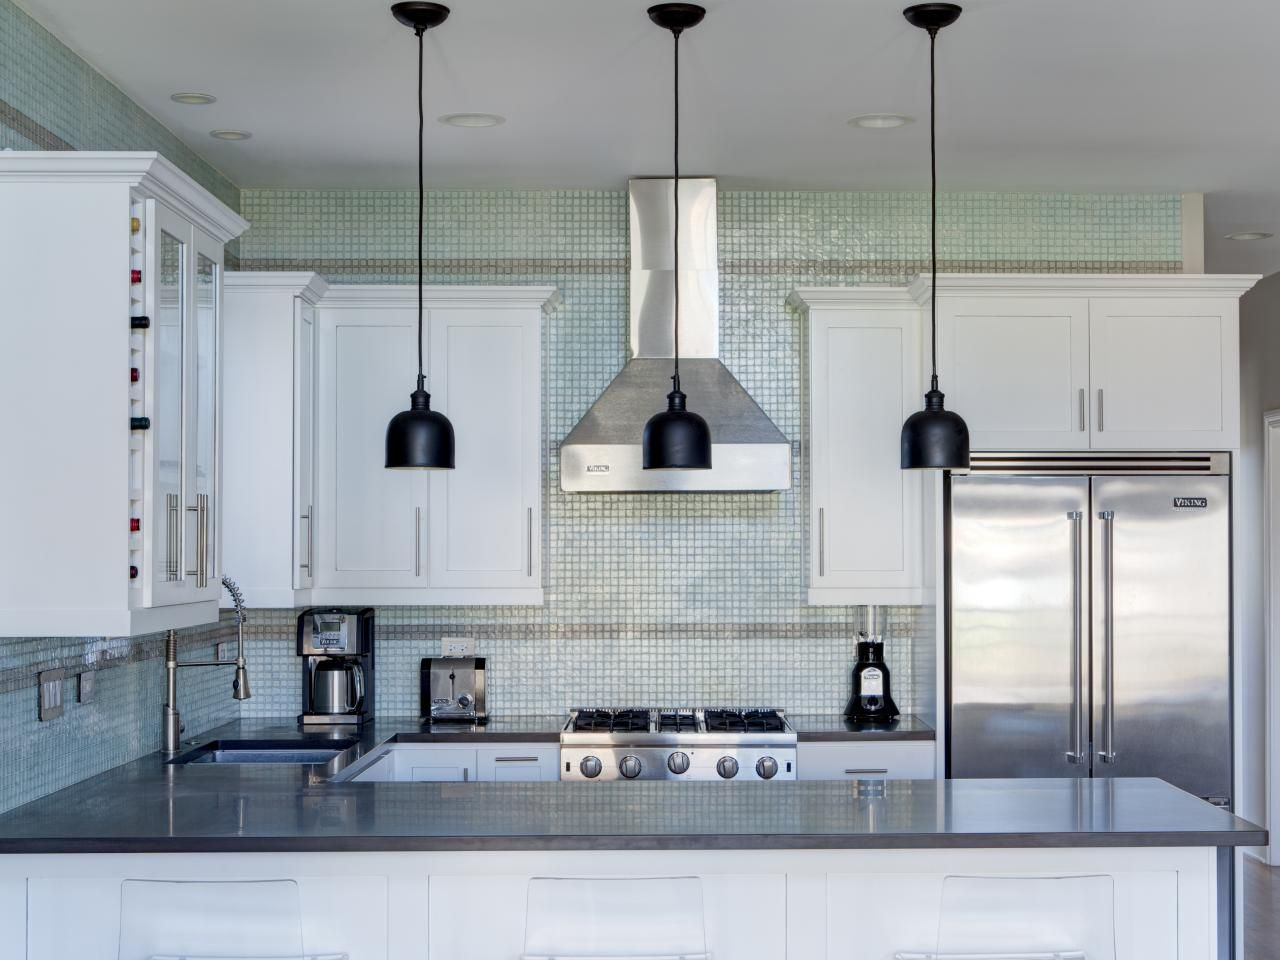 Ideas Industriele Keuken : Kitchen counter backsplashes pictures ideas from